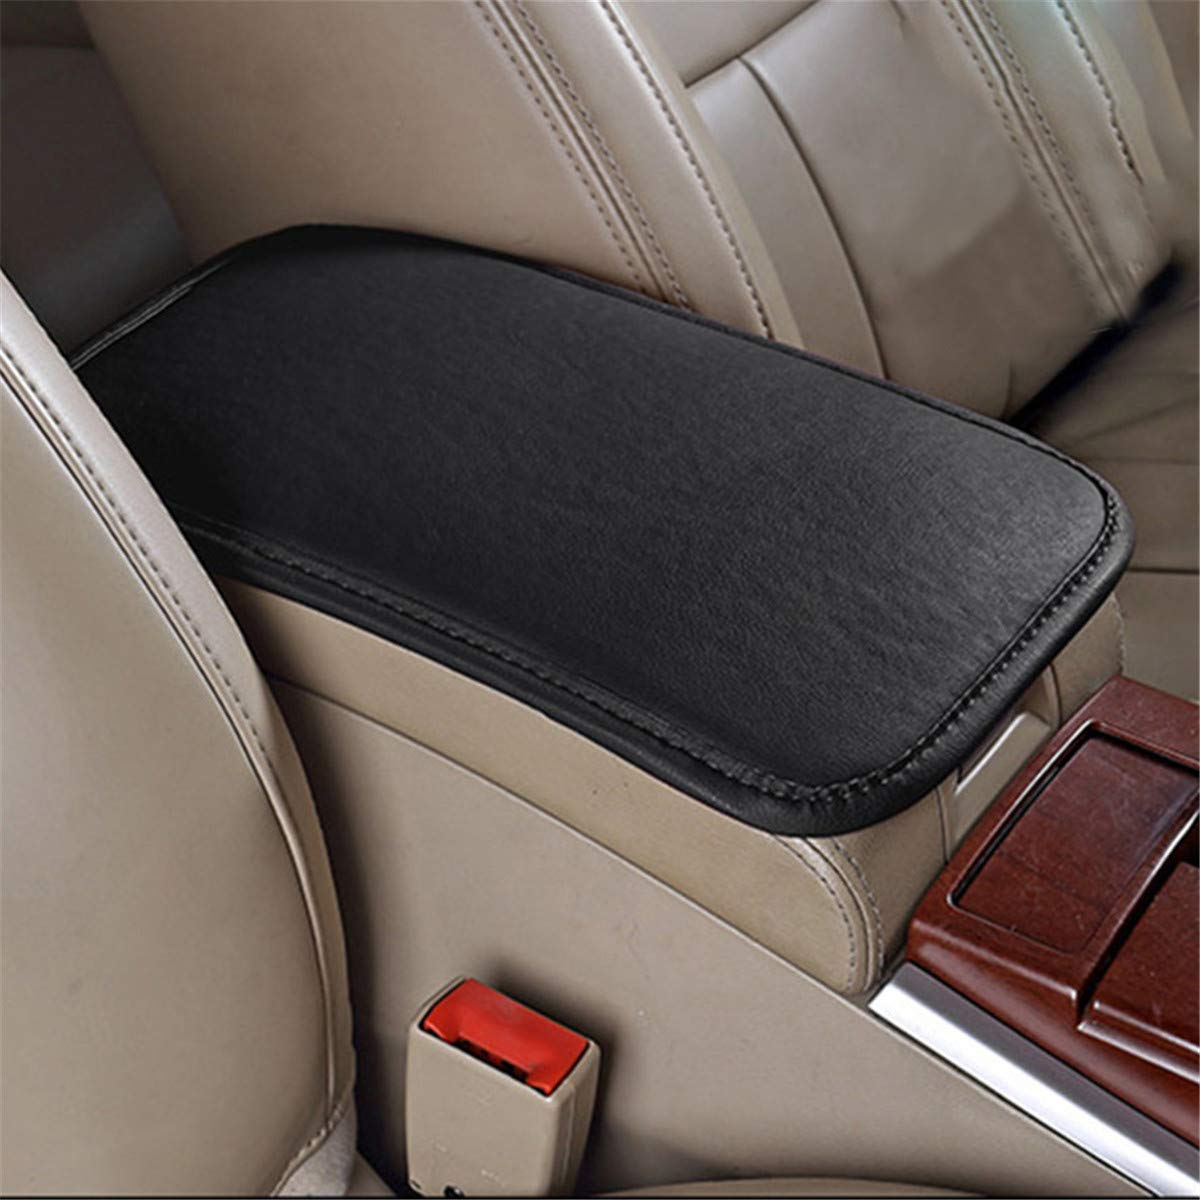 Center Console Armrest Protector Universal Car Armrest Cover LKXHarleya Car Center Console Cover Truck Car Accessories TM SUV PU Leather Auto Arm Rest Cushion Pads Fit for Most Vehicle